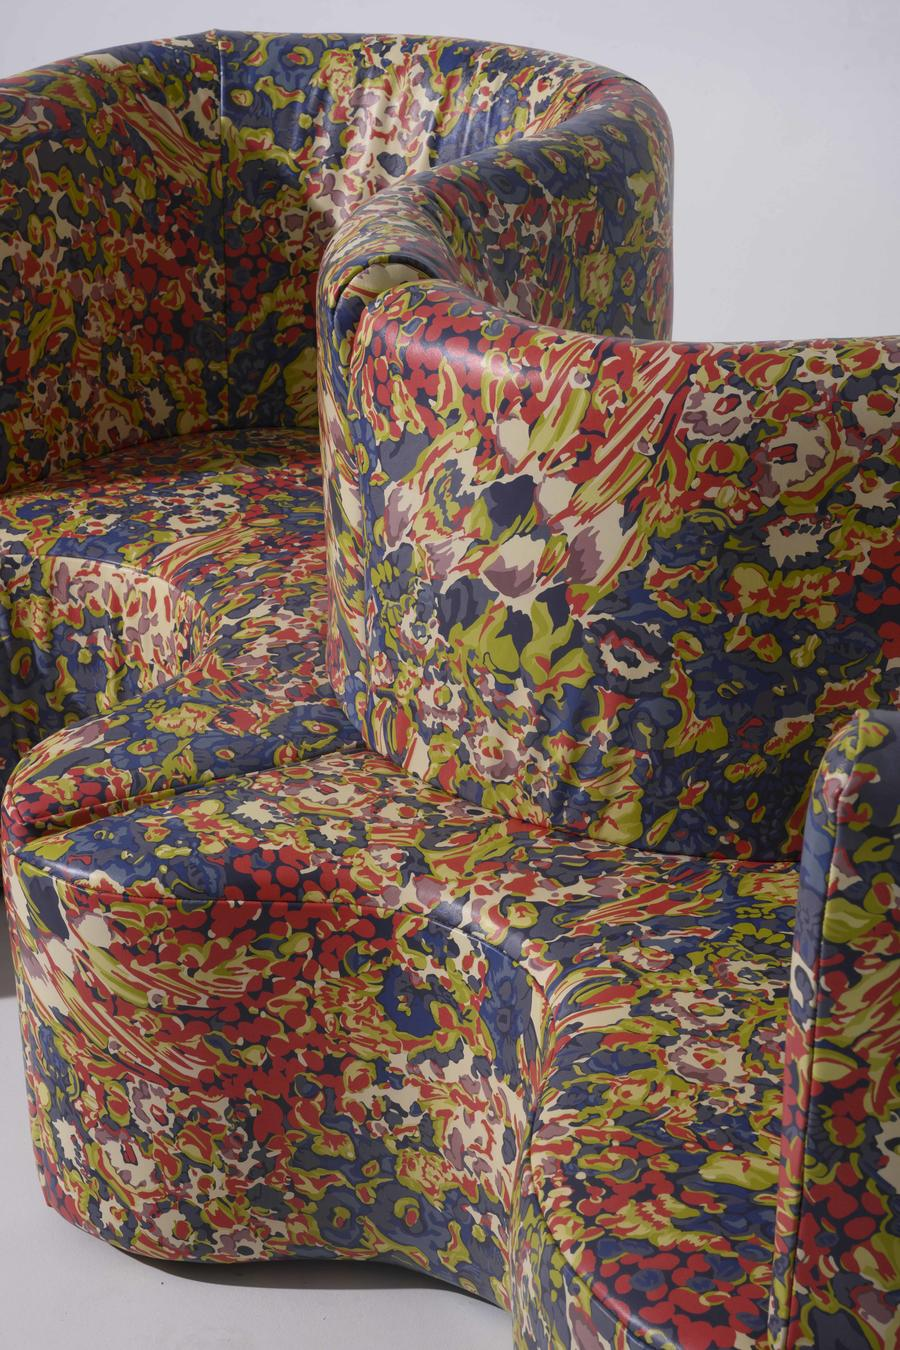 A sofa covered in Florabunda from Moore & Giles